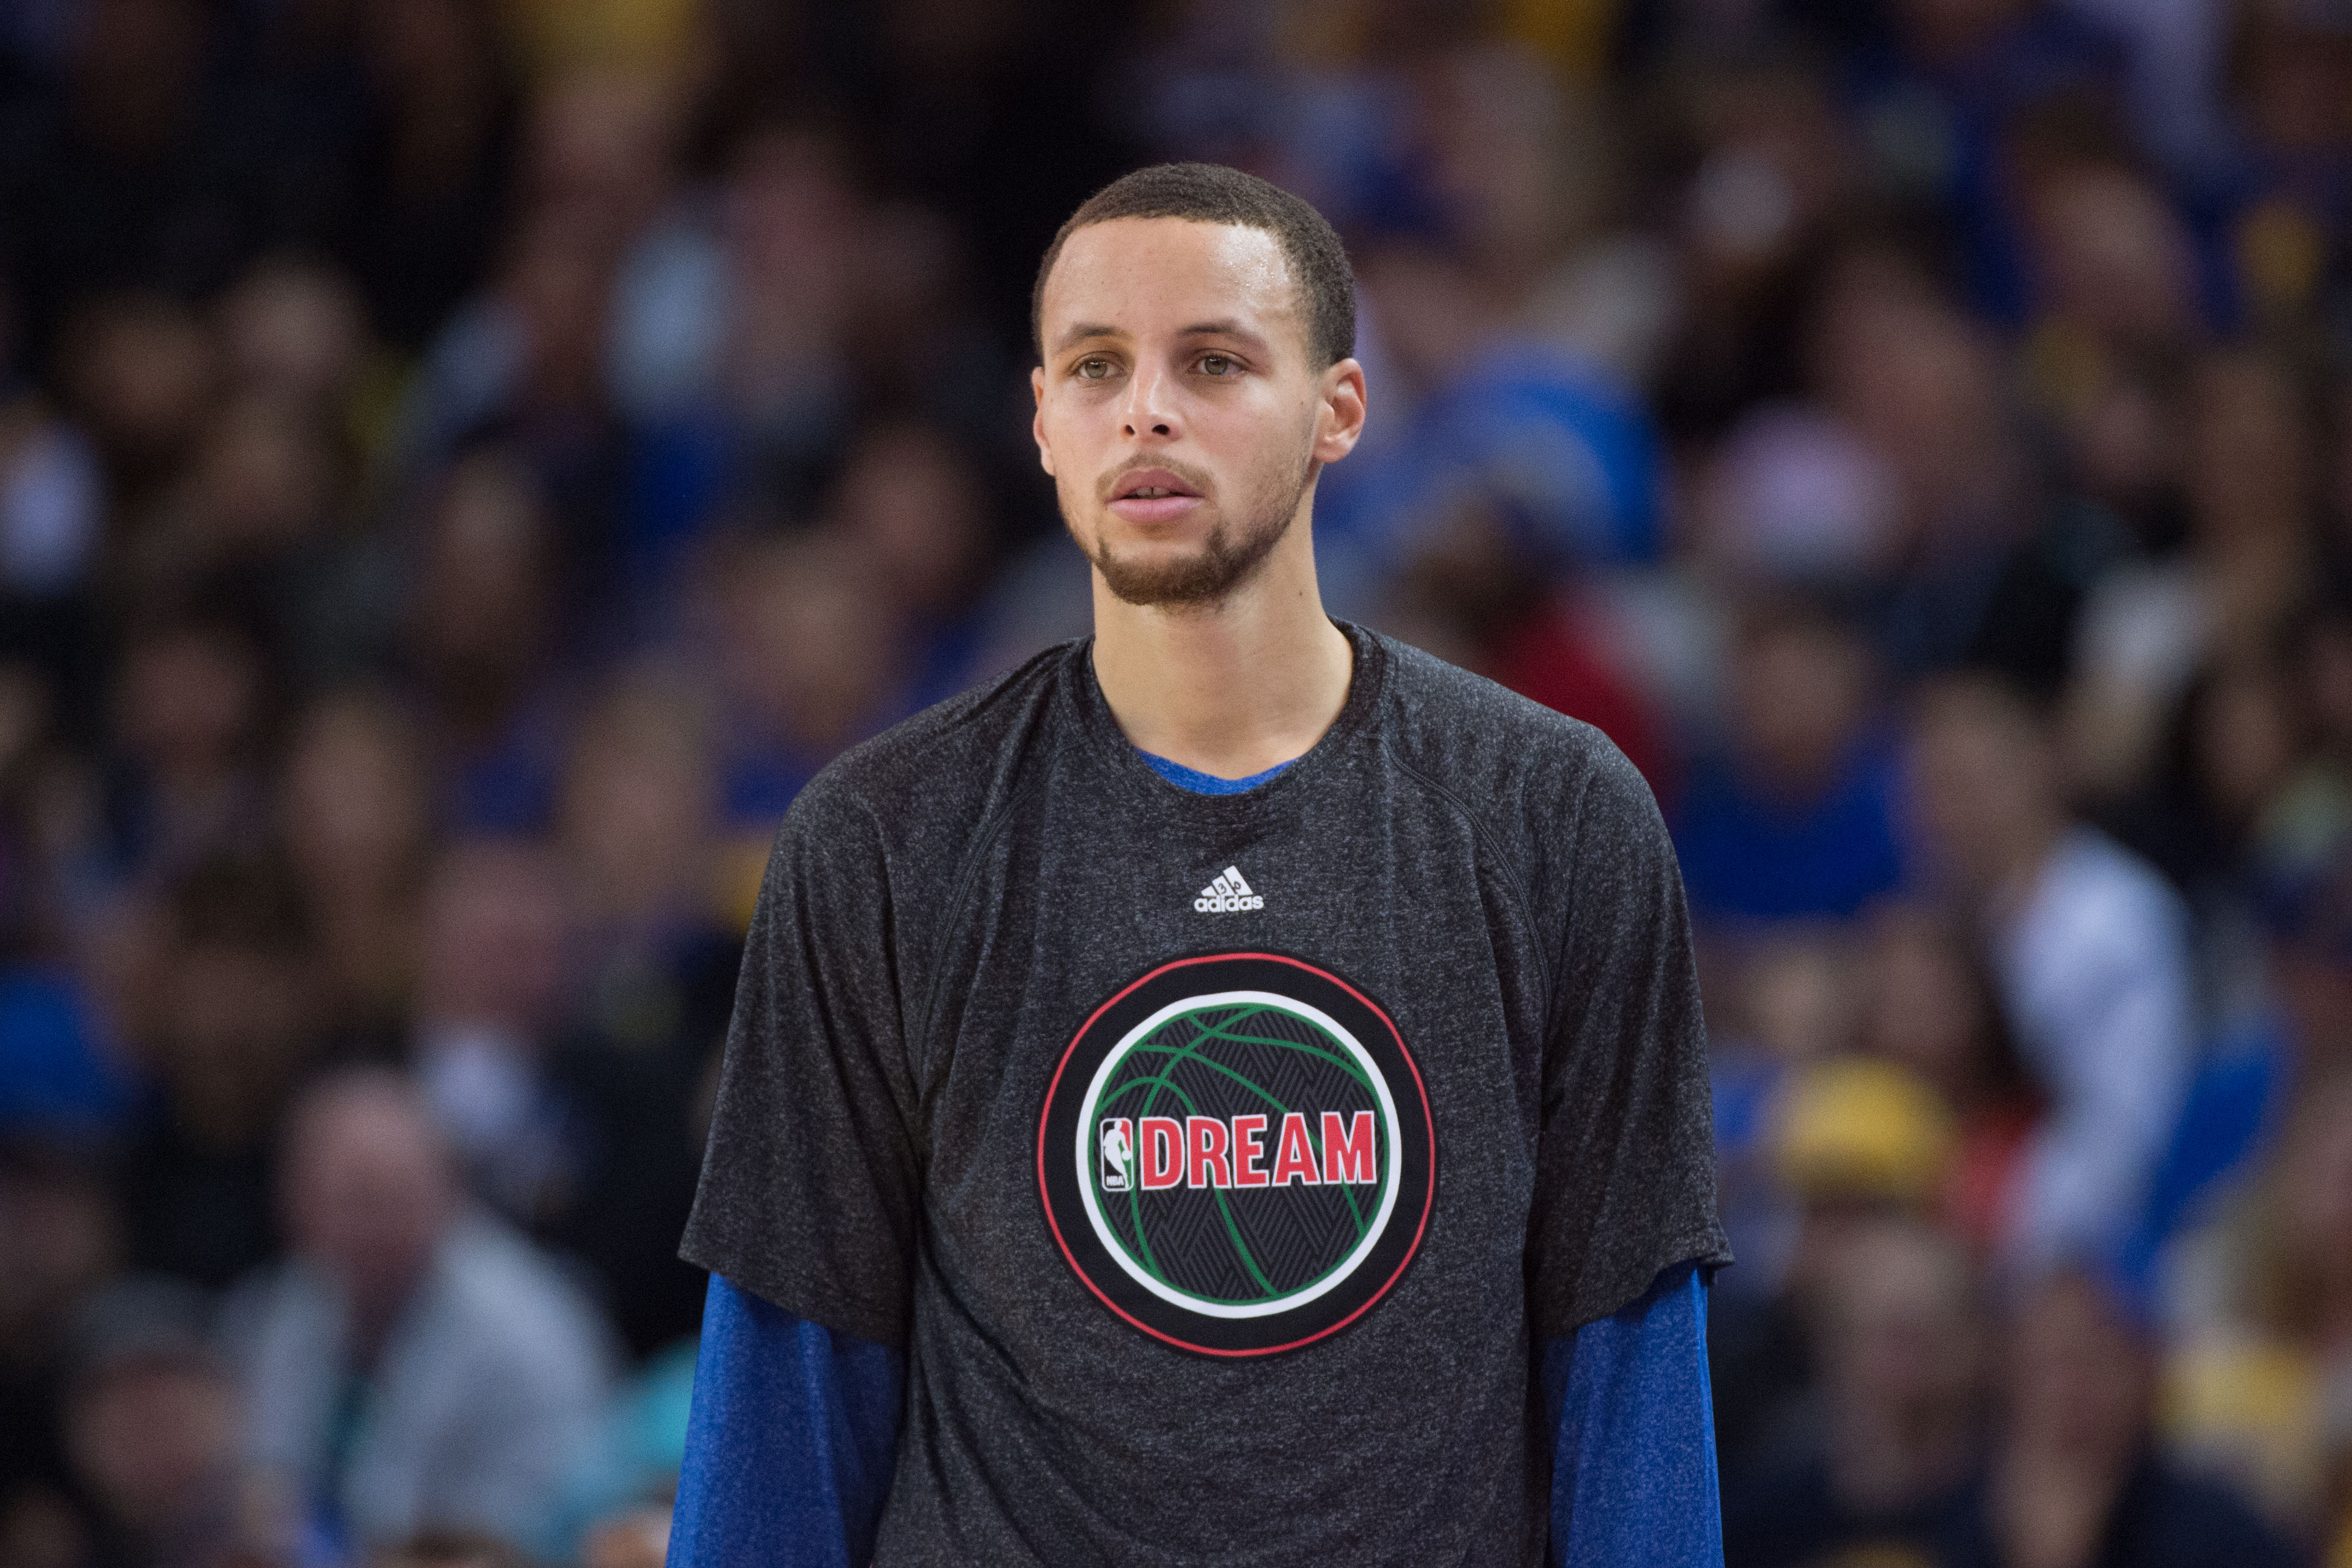 Stephen Curry's mom fines him for turnovers